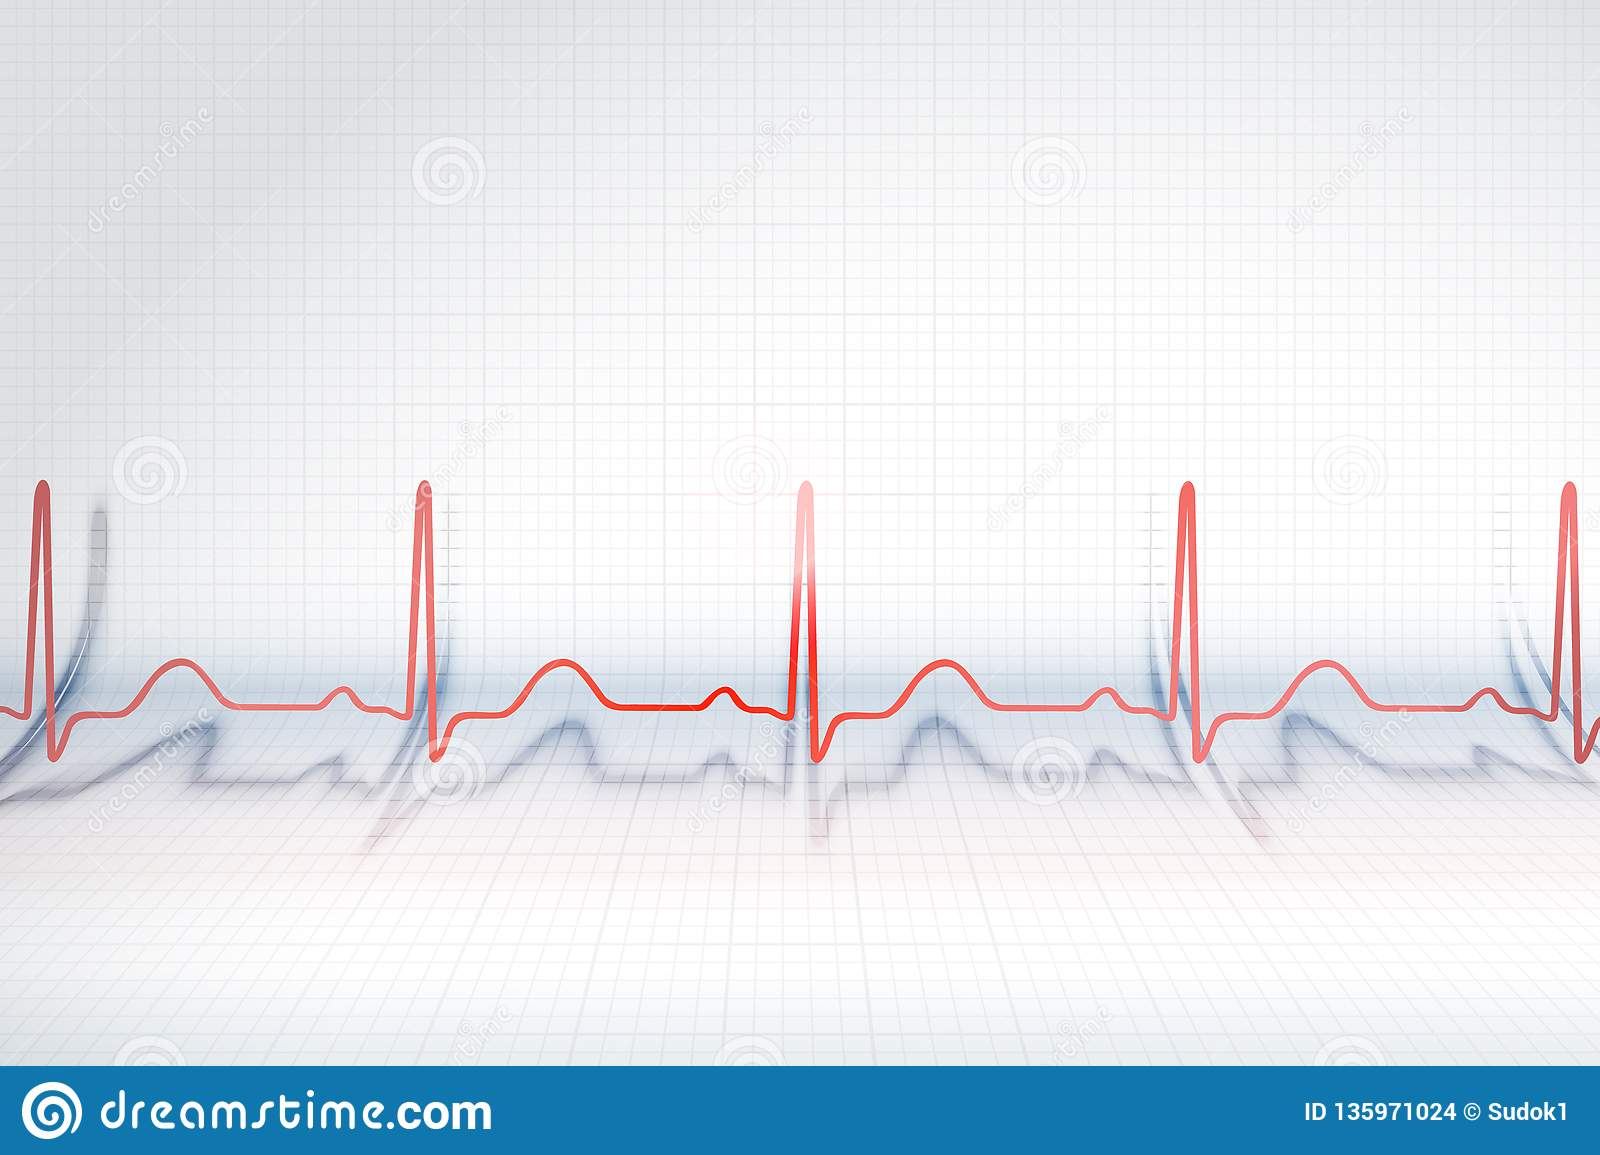 Red line of ECG chart